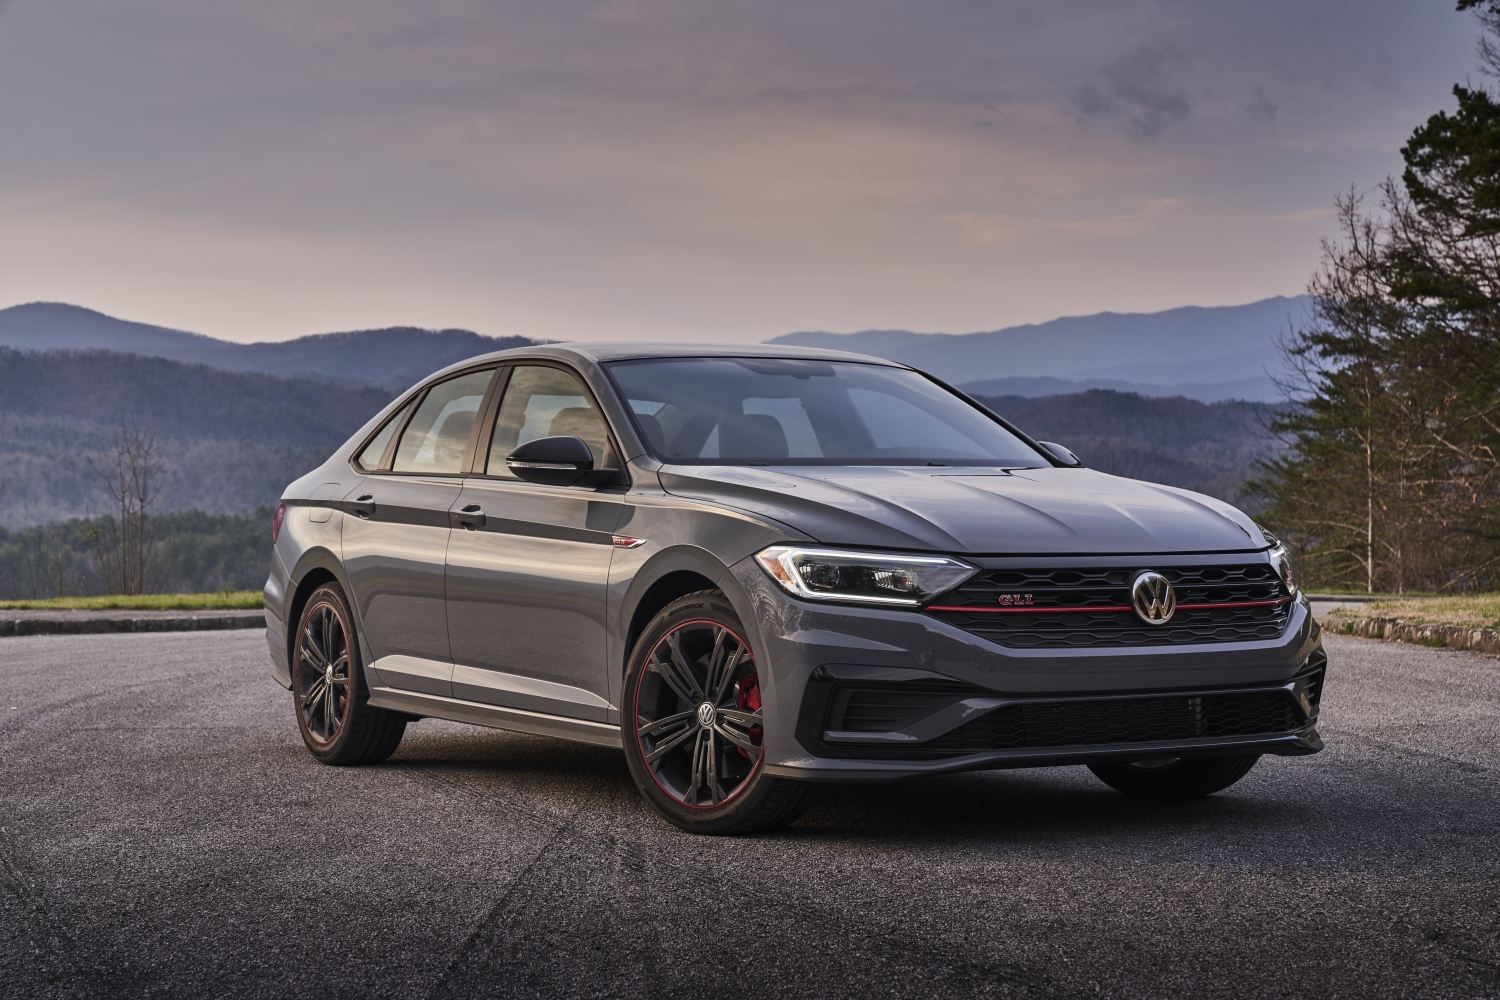 hight resolution of the national highway traffic safety administration nhtsa has awarded the 2019 volkswagen jetta its maximum overall rating of five stars following front